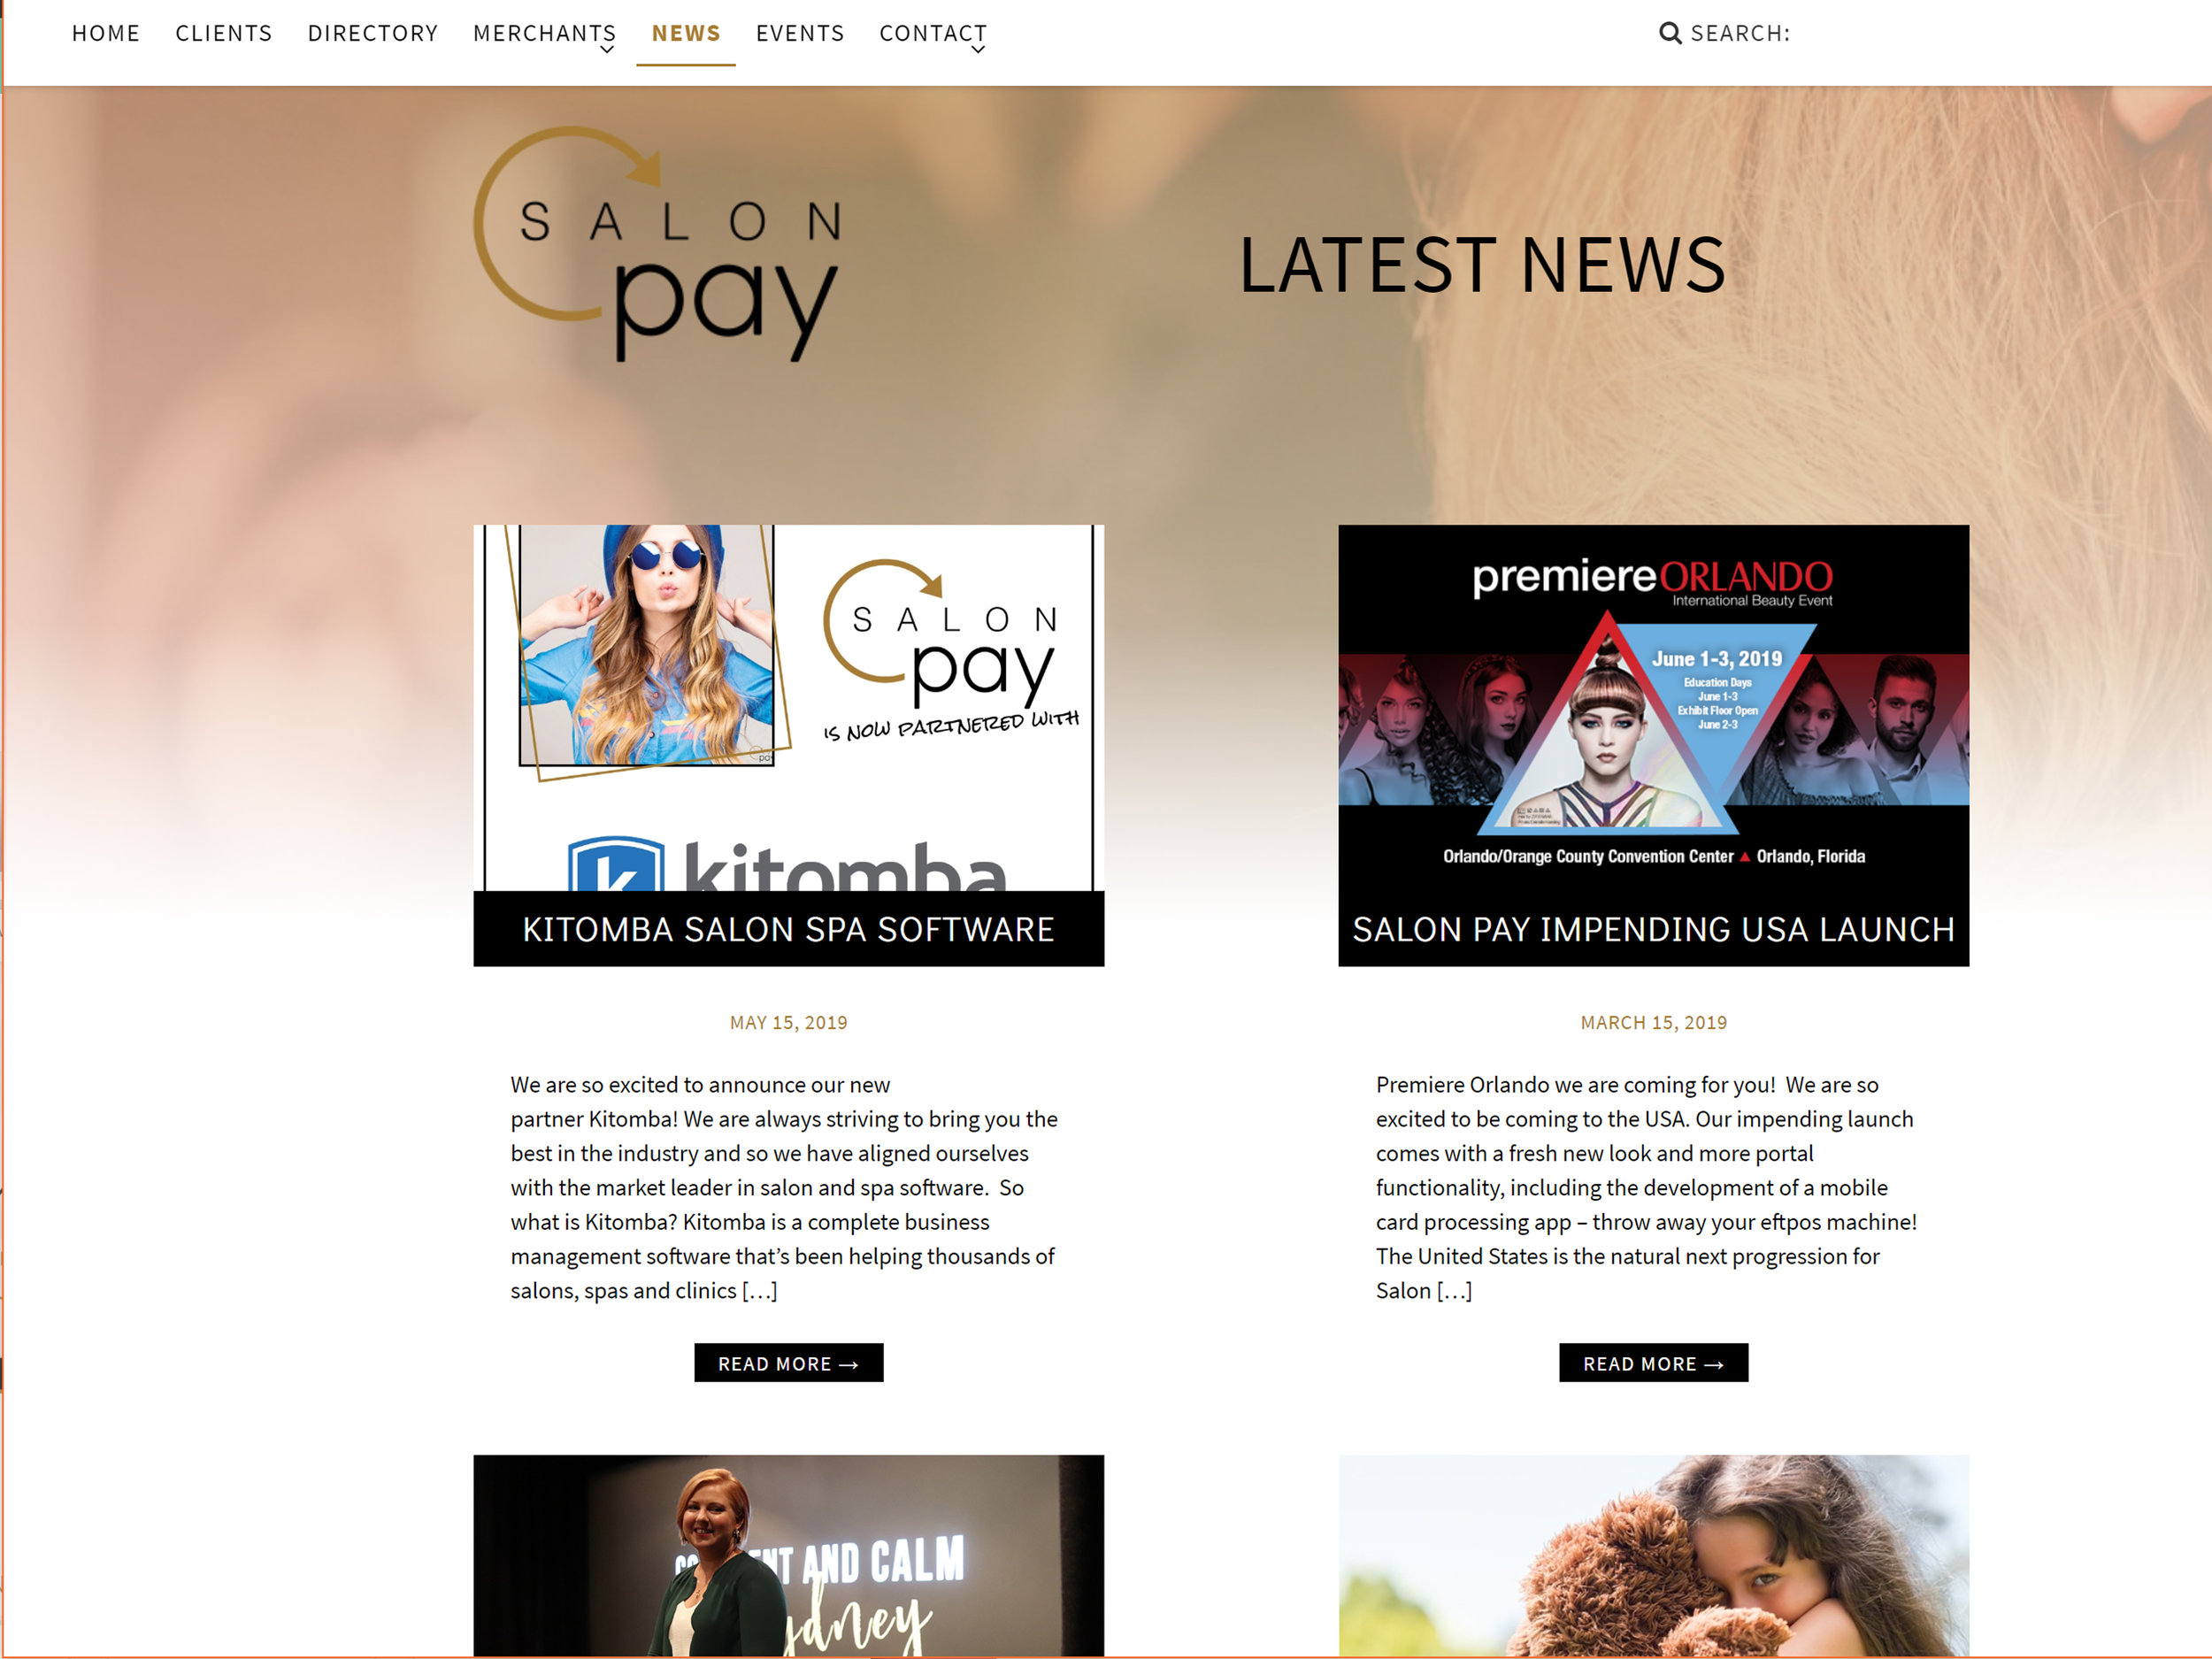 websitemockup-salonpay4.jpg